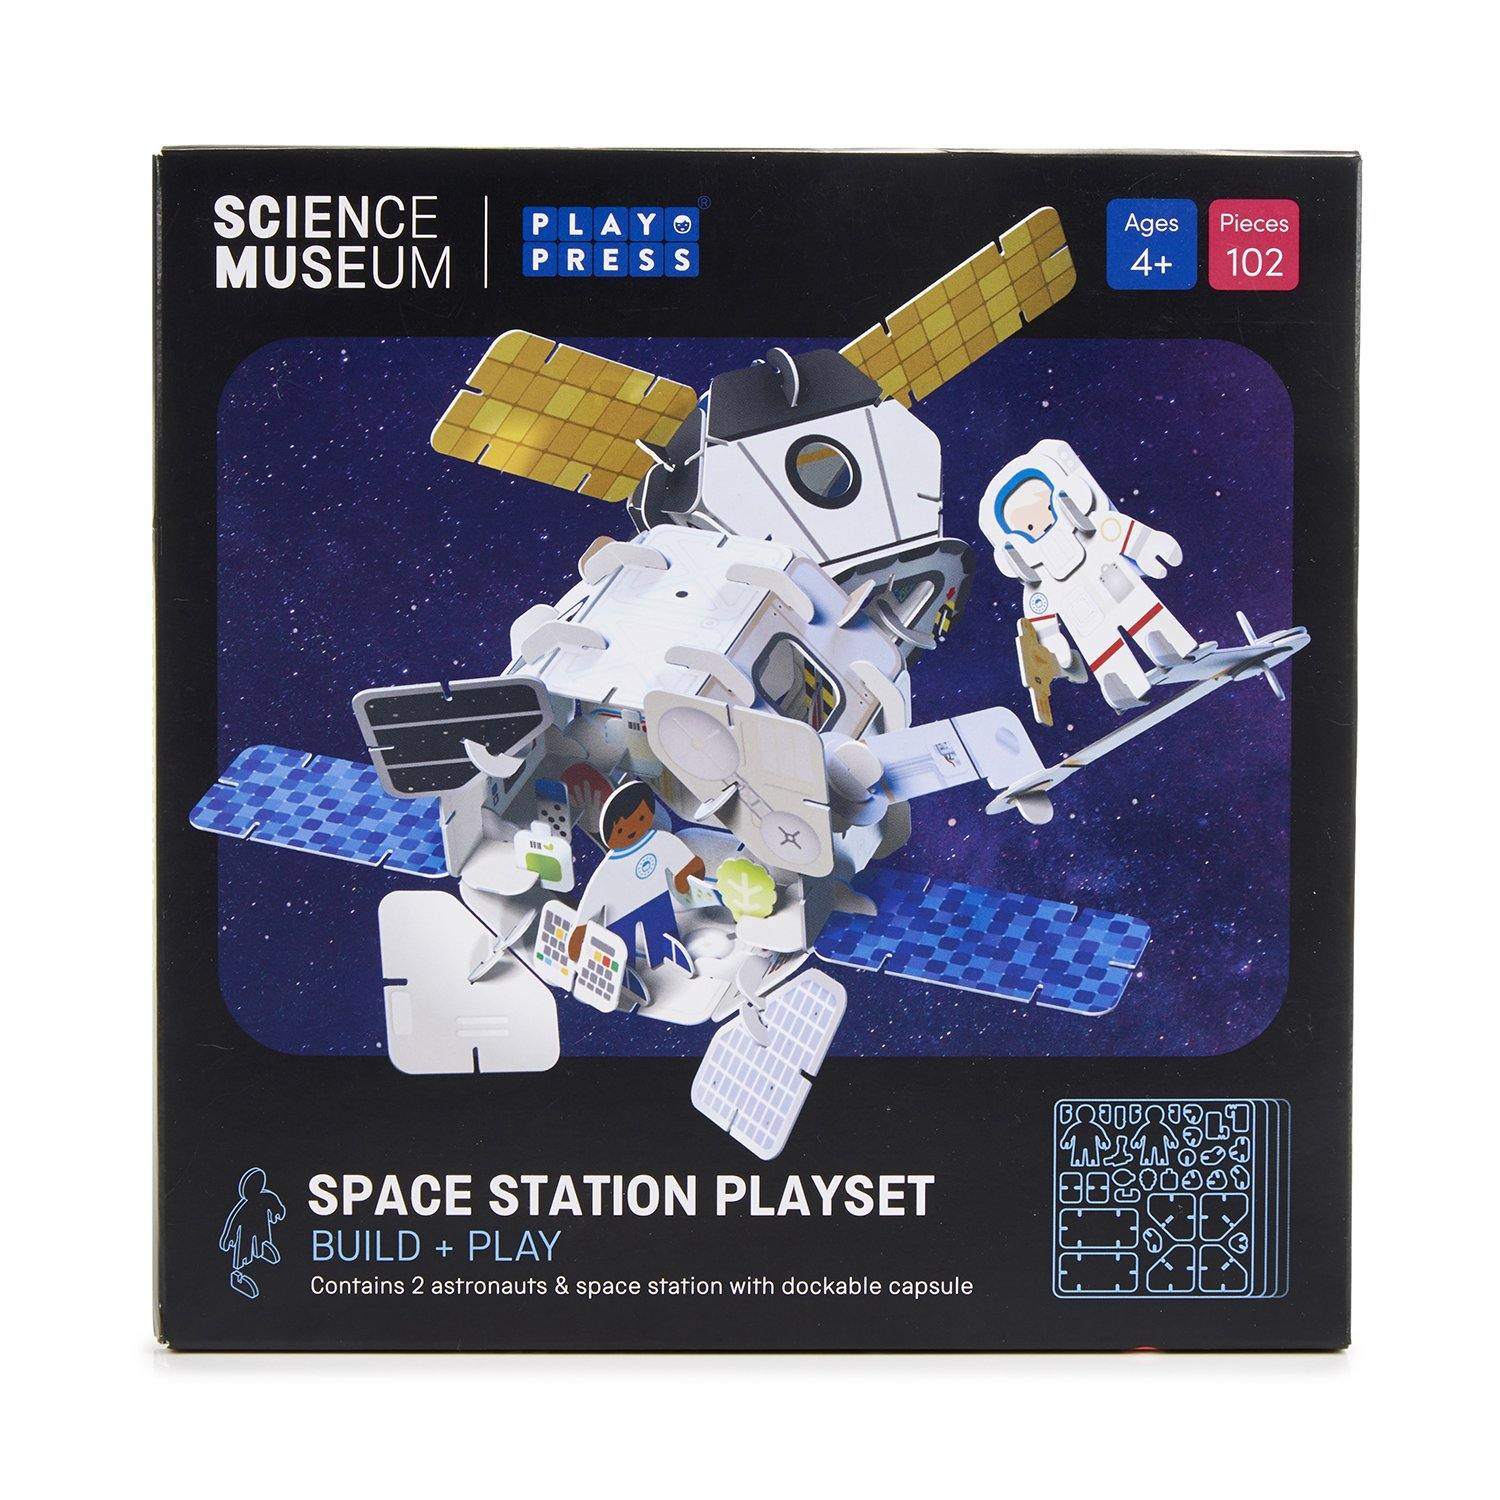 Space station playset box - front